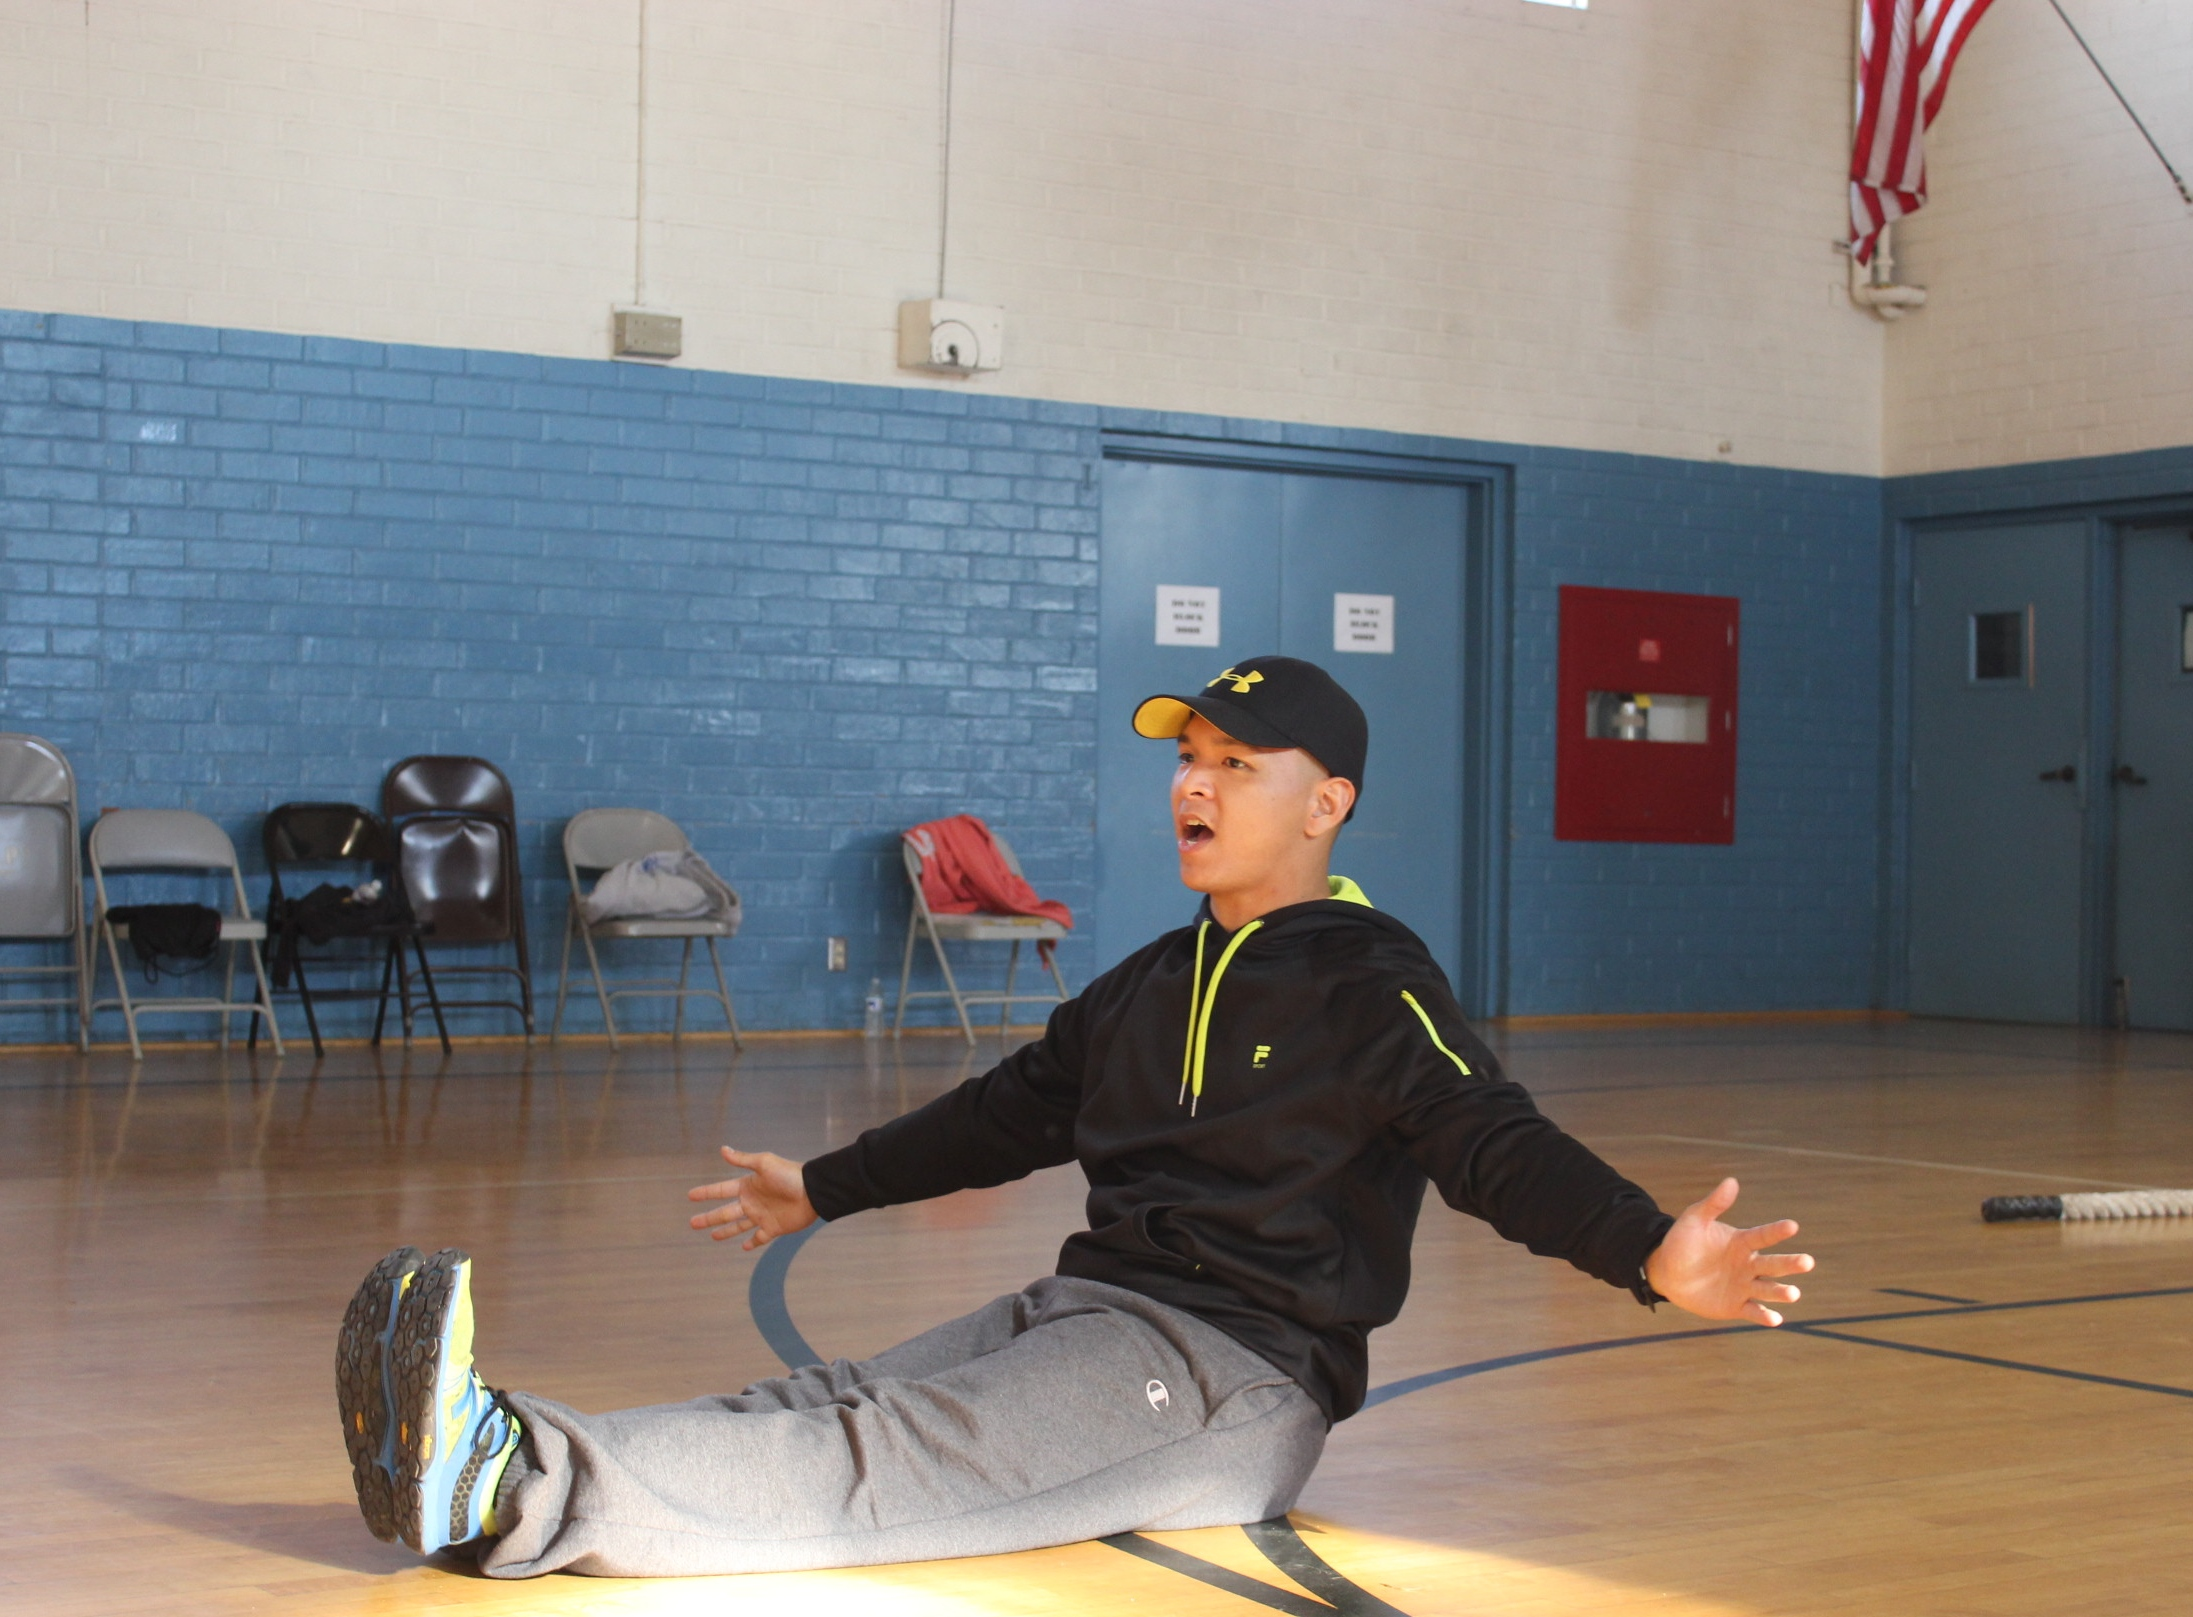 Student motivates others to exceed their physical health limits